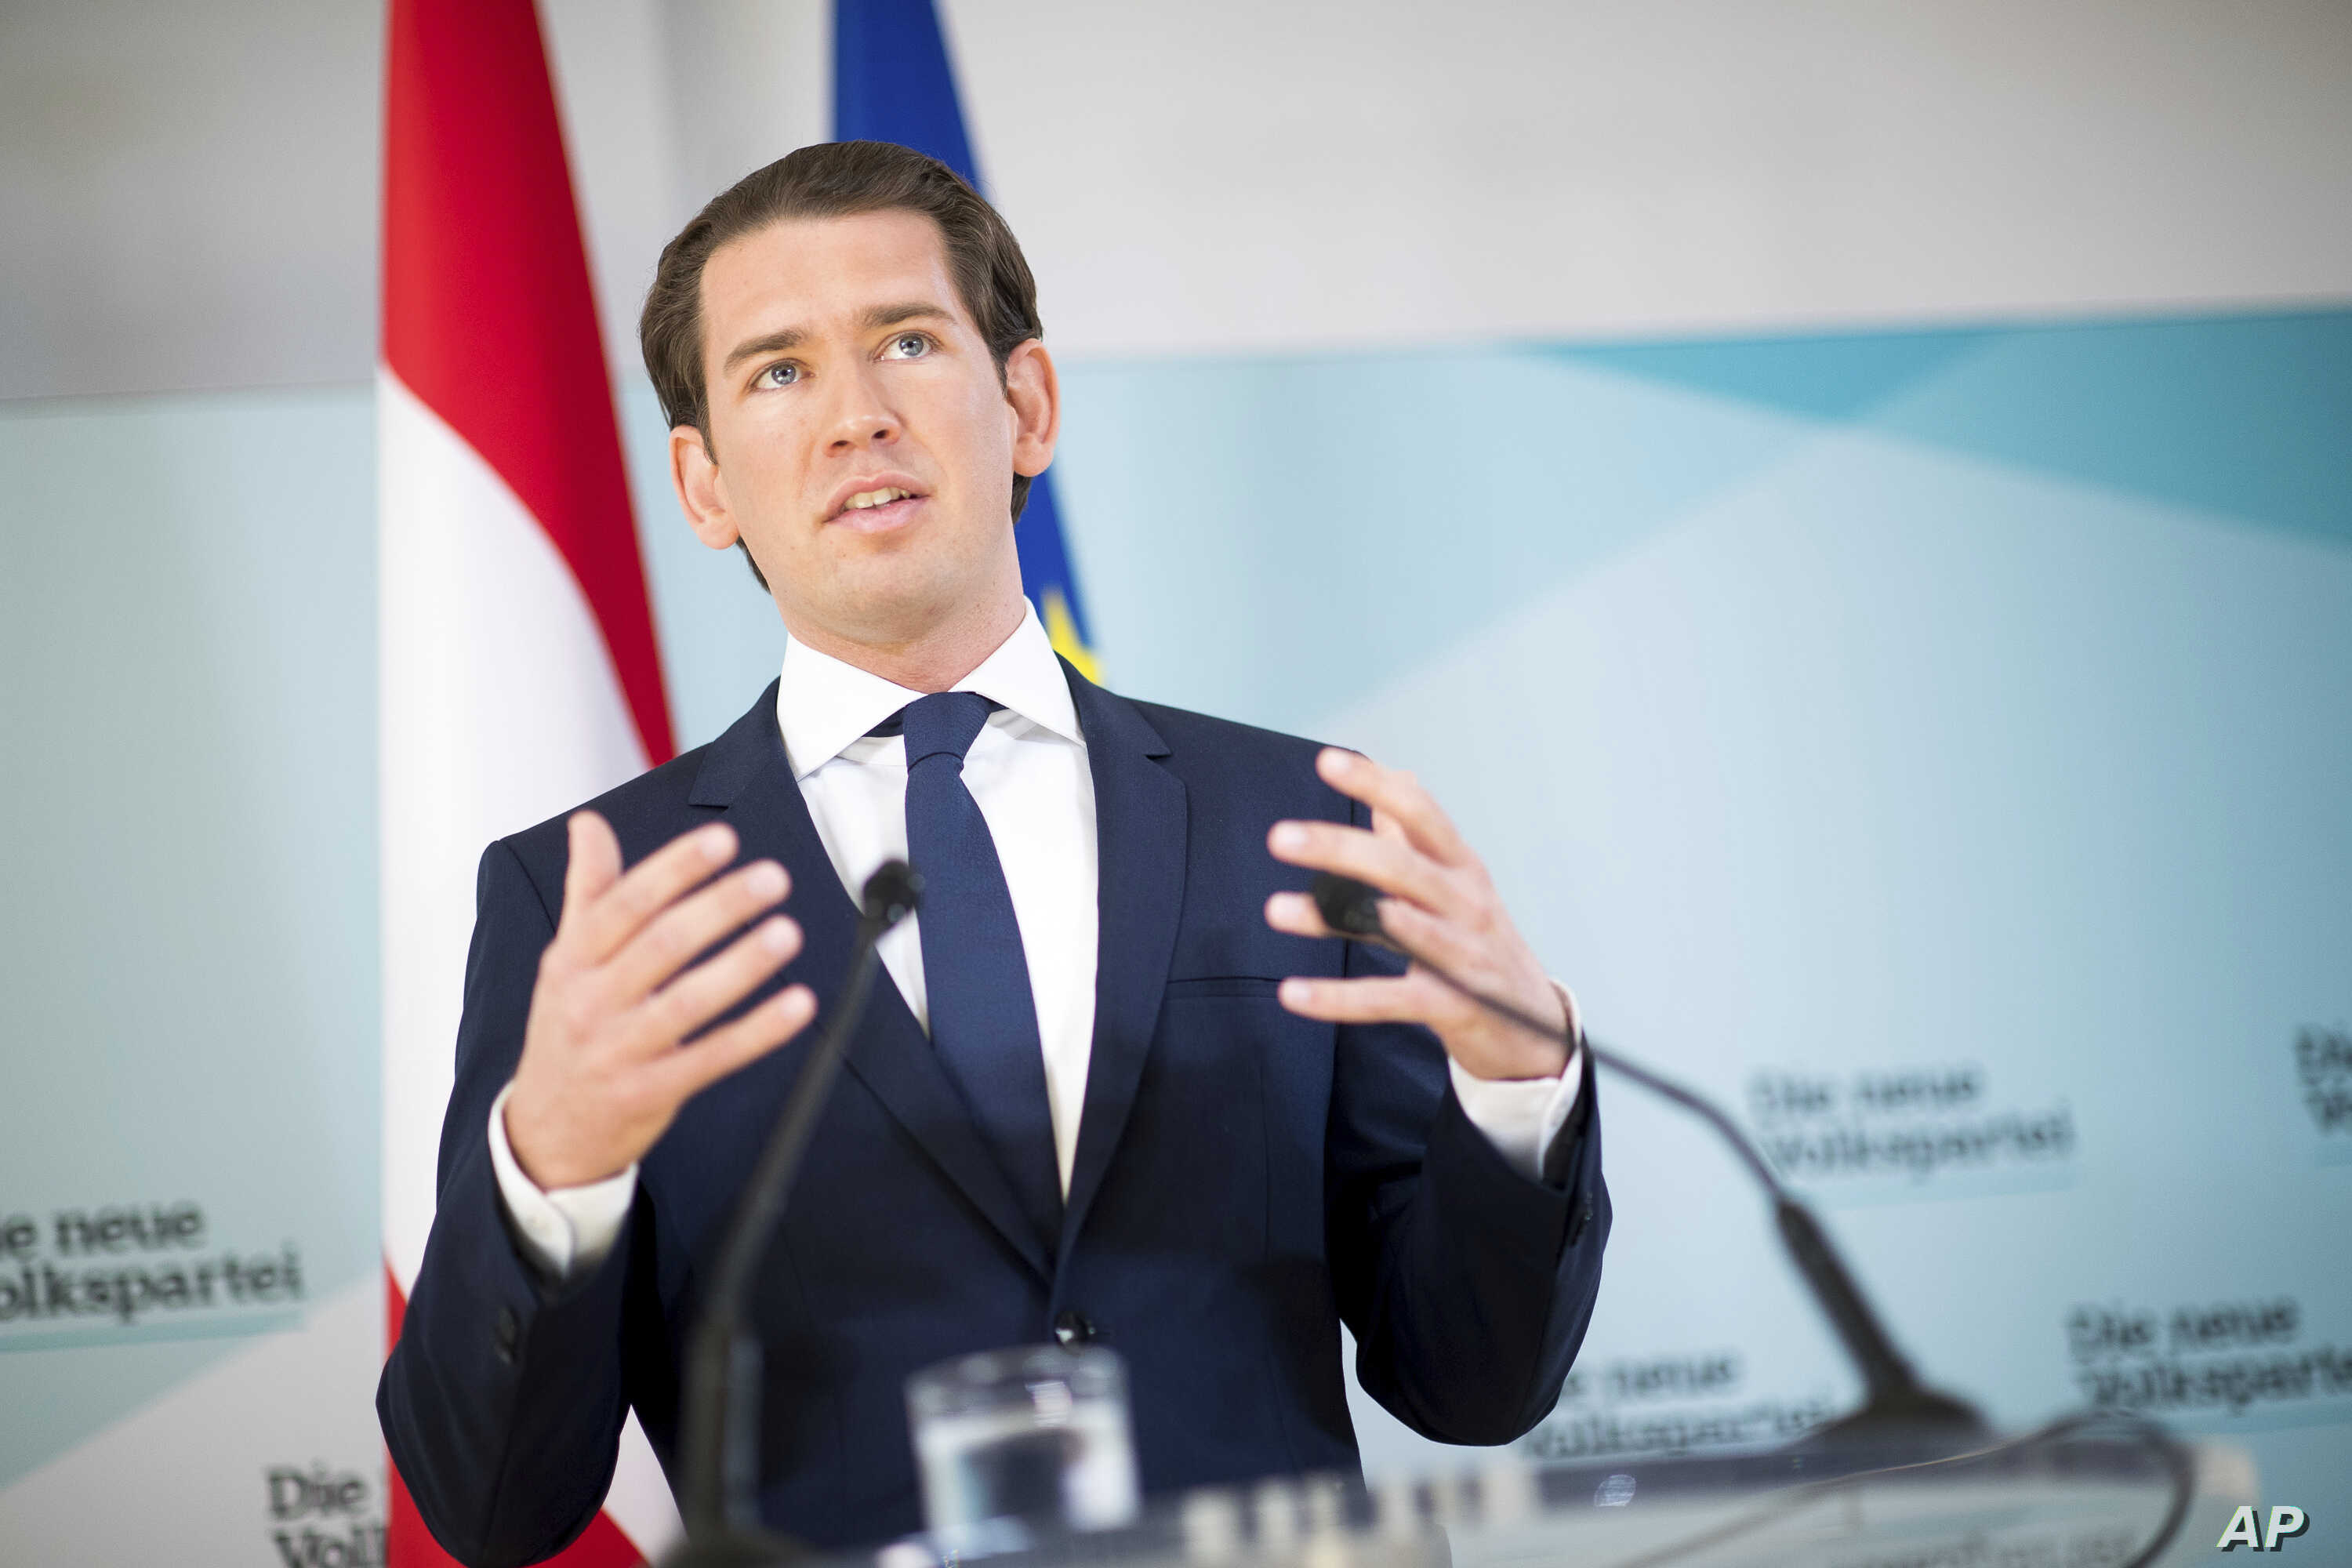 Austrian Chancellor Sebastian Kurz, of the Austrian People's Party, addresses the media during a news conference in Vienna, Austria, May 20, 2019.